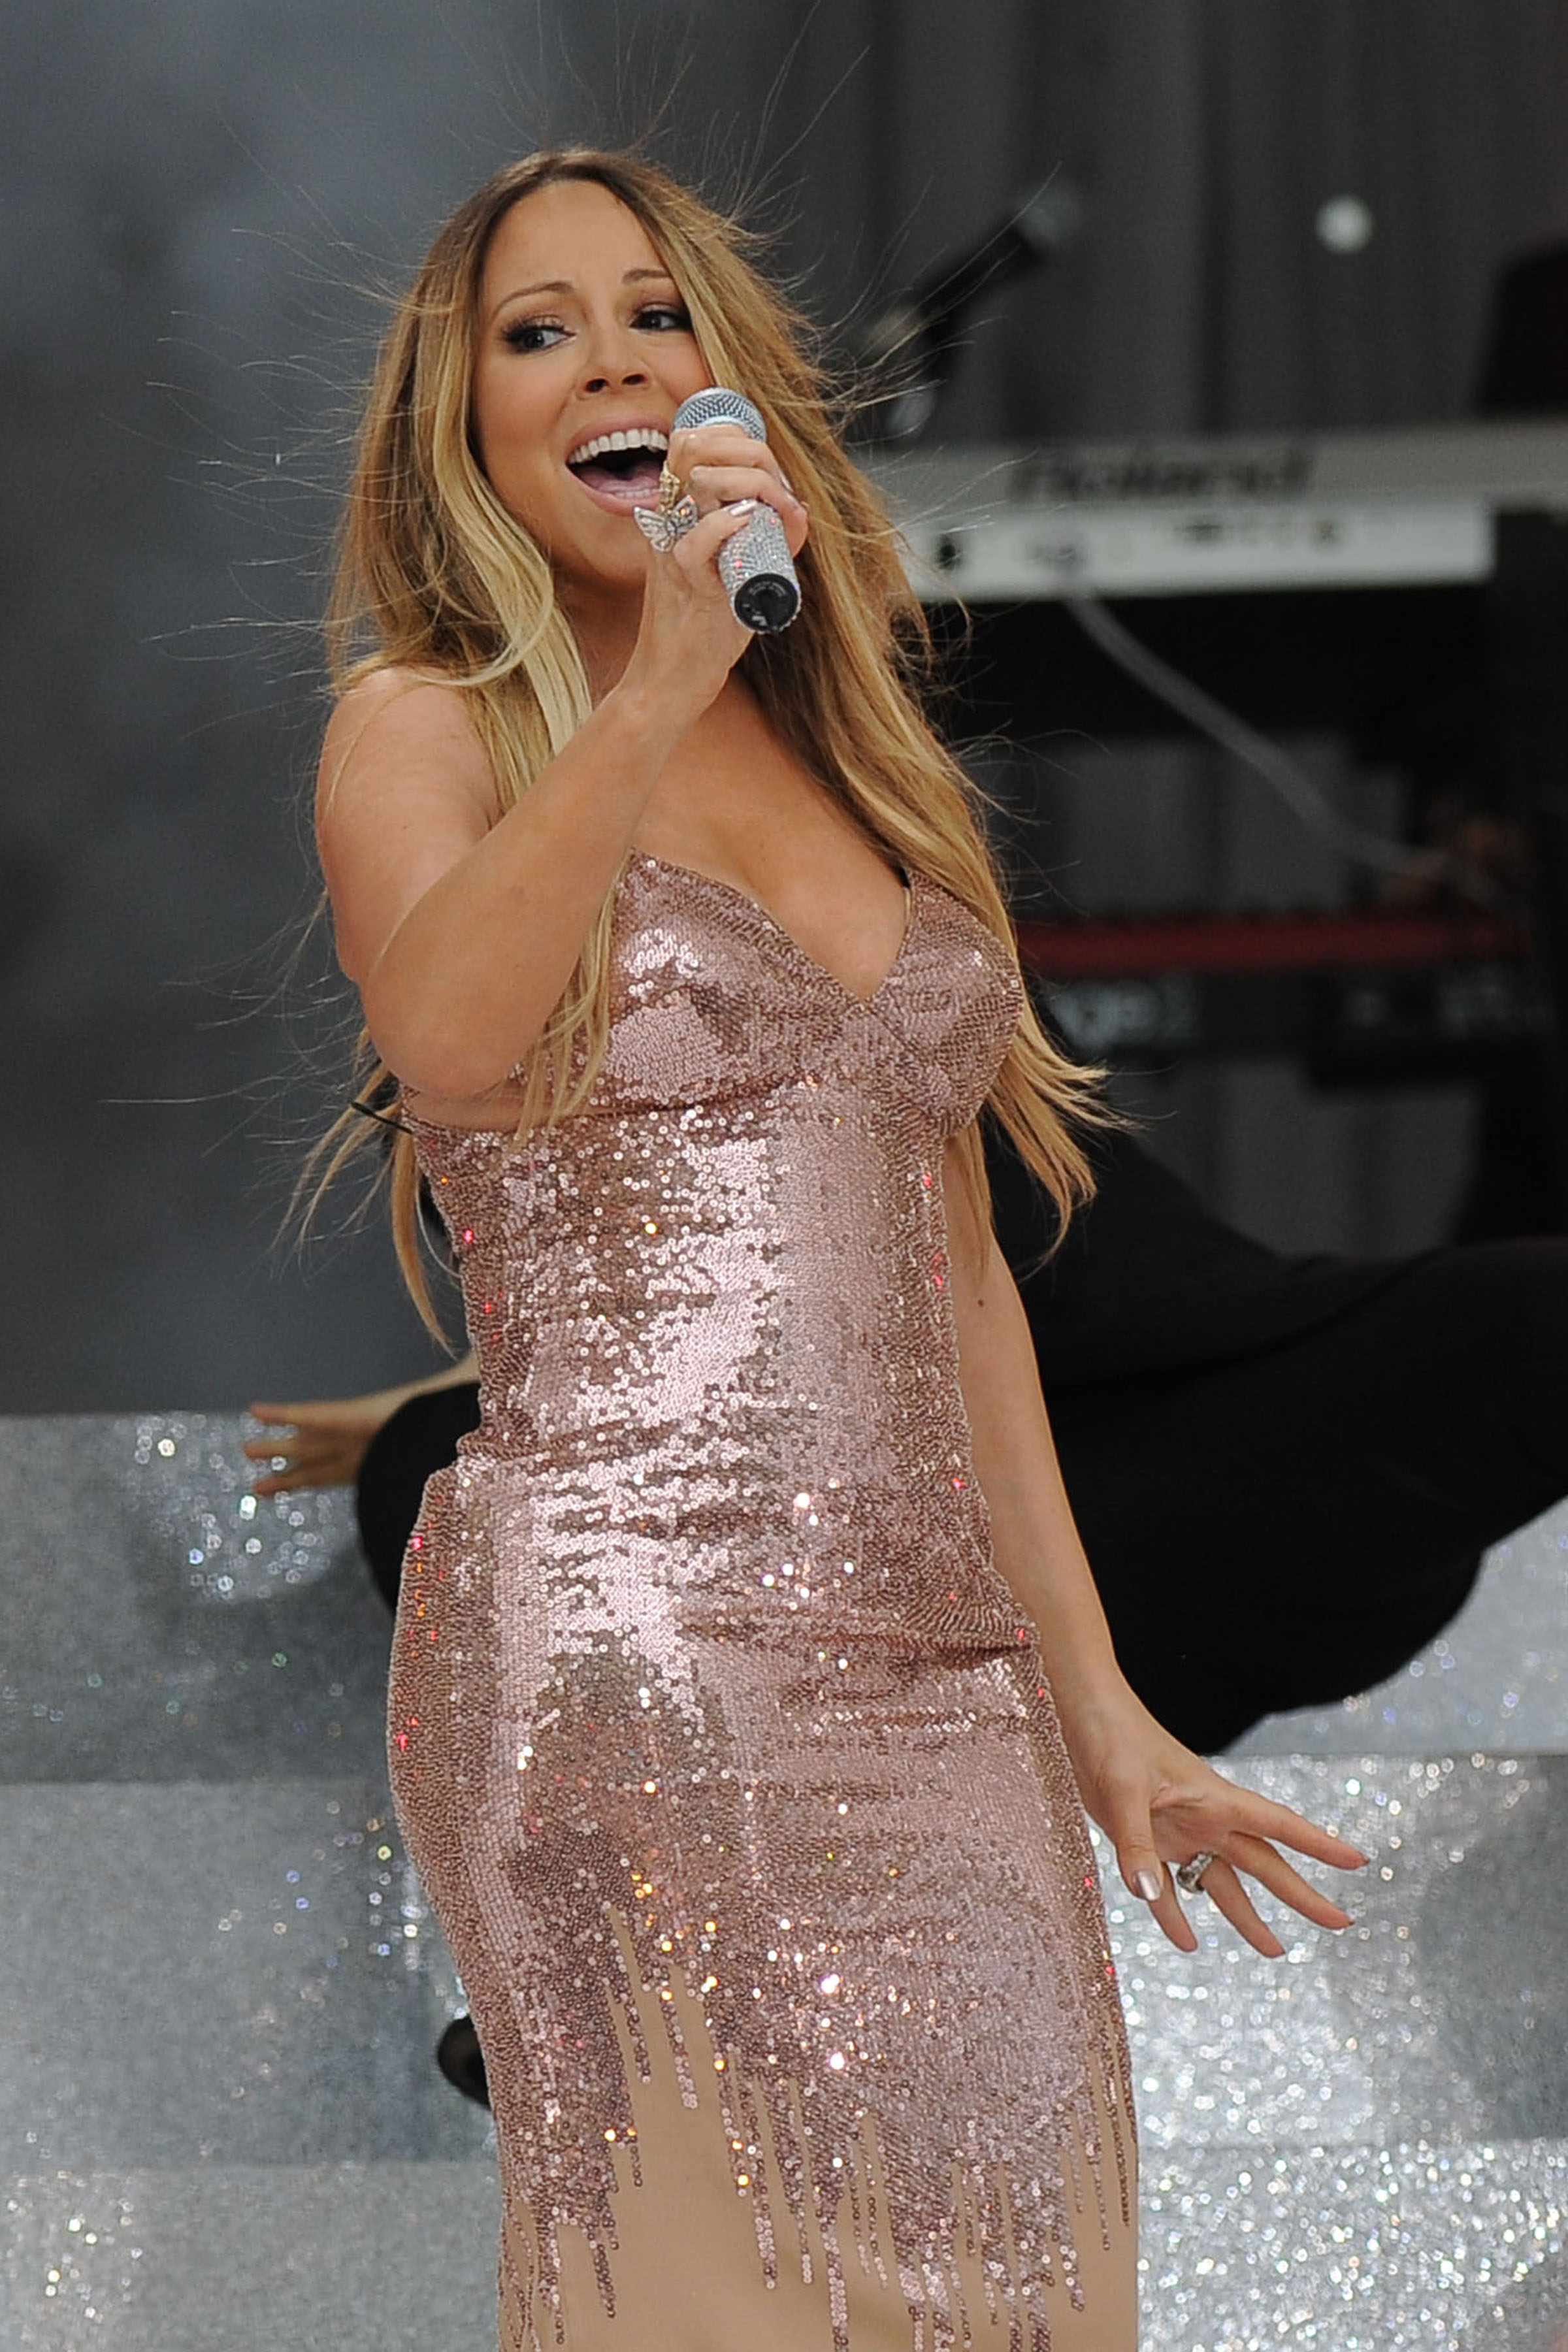 Mariah Carey Announces Departure From 'American Idol,' Upcoming World Tour